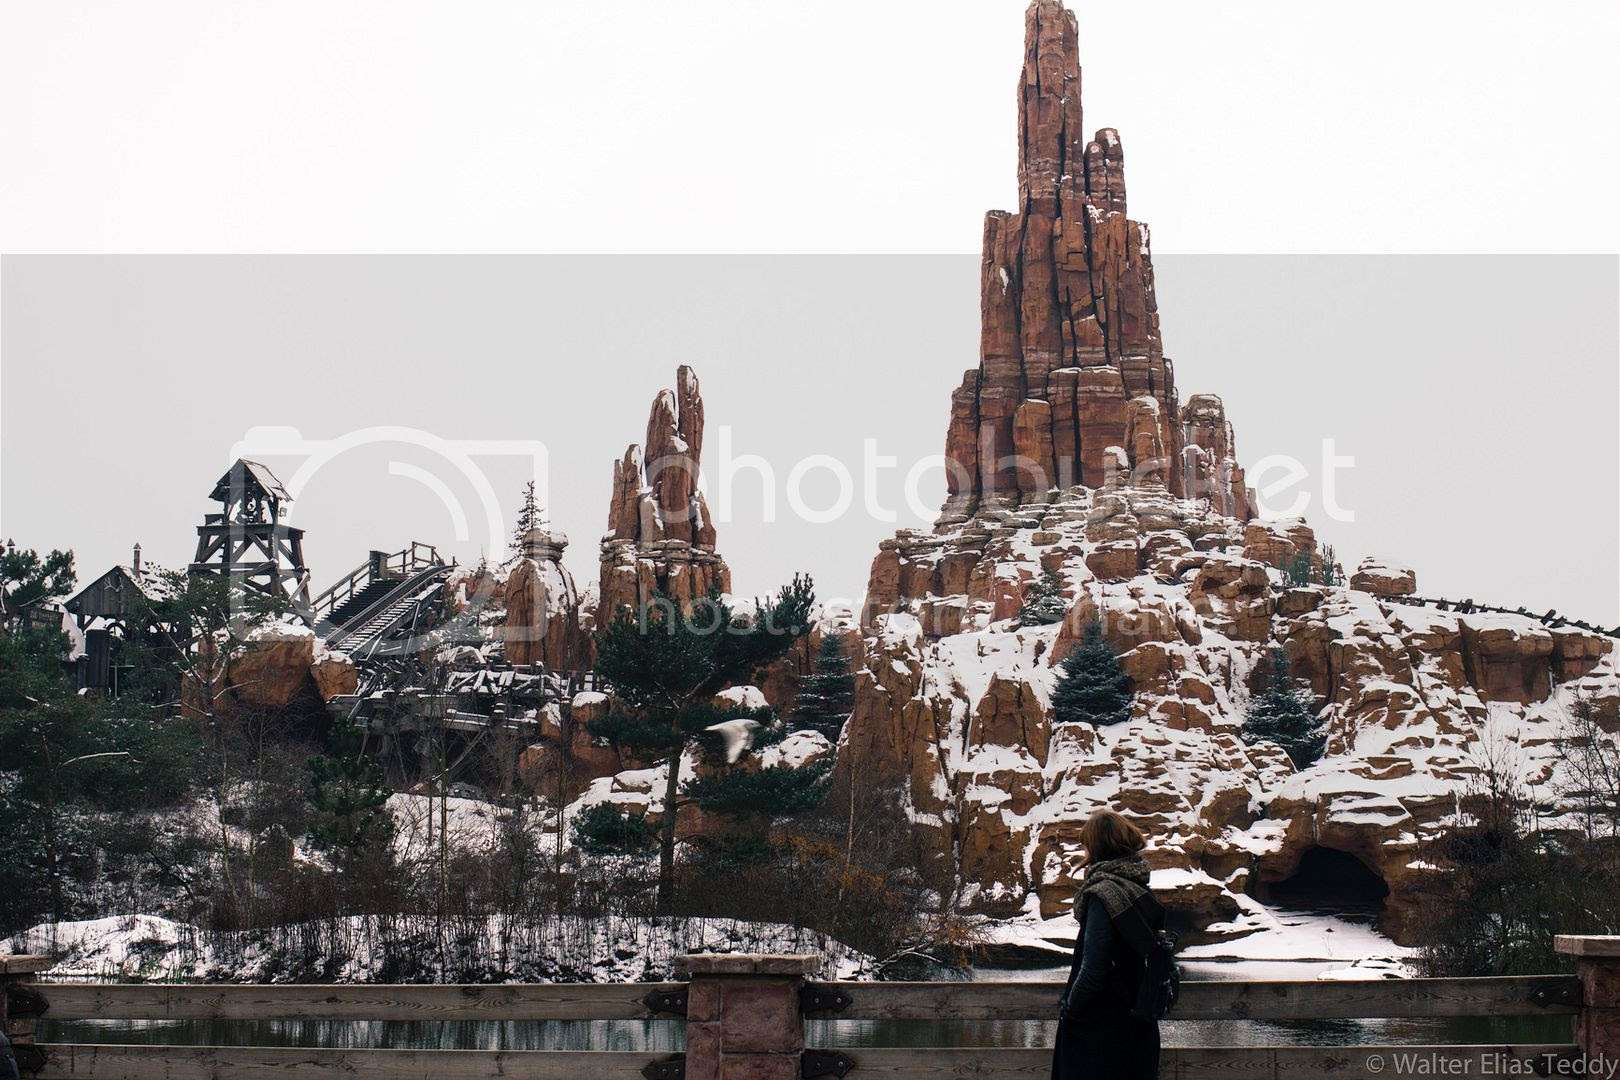 disneyland paris photo essay by walter elias teddy part two